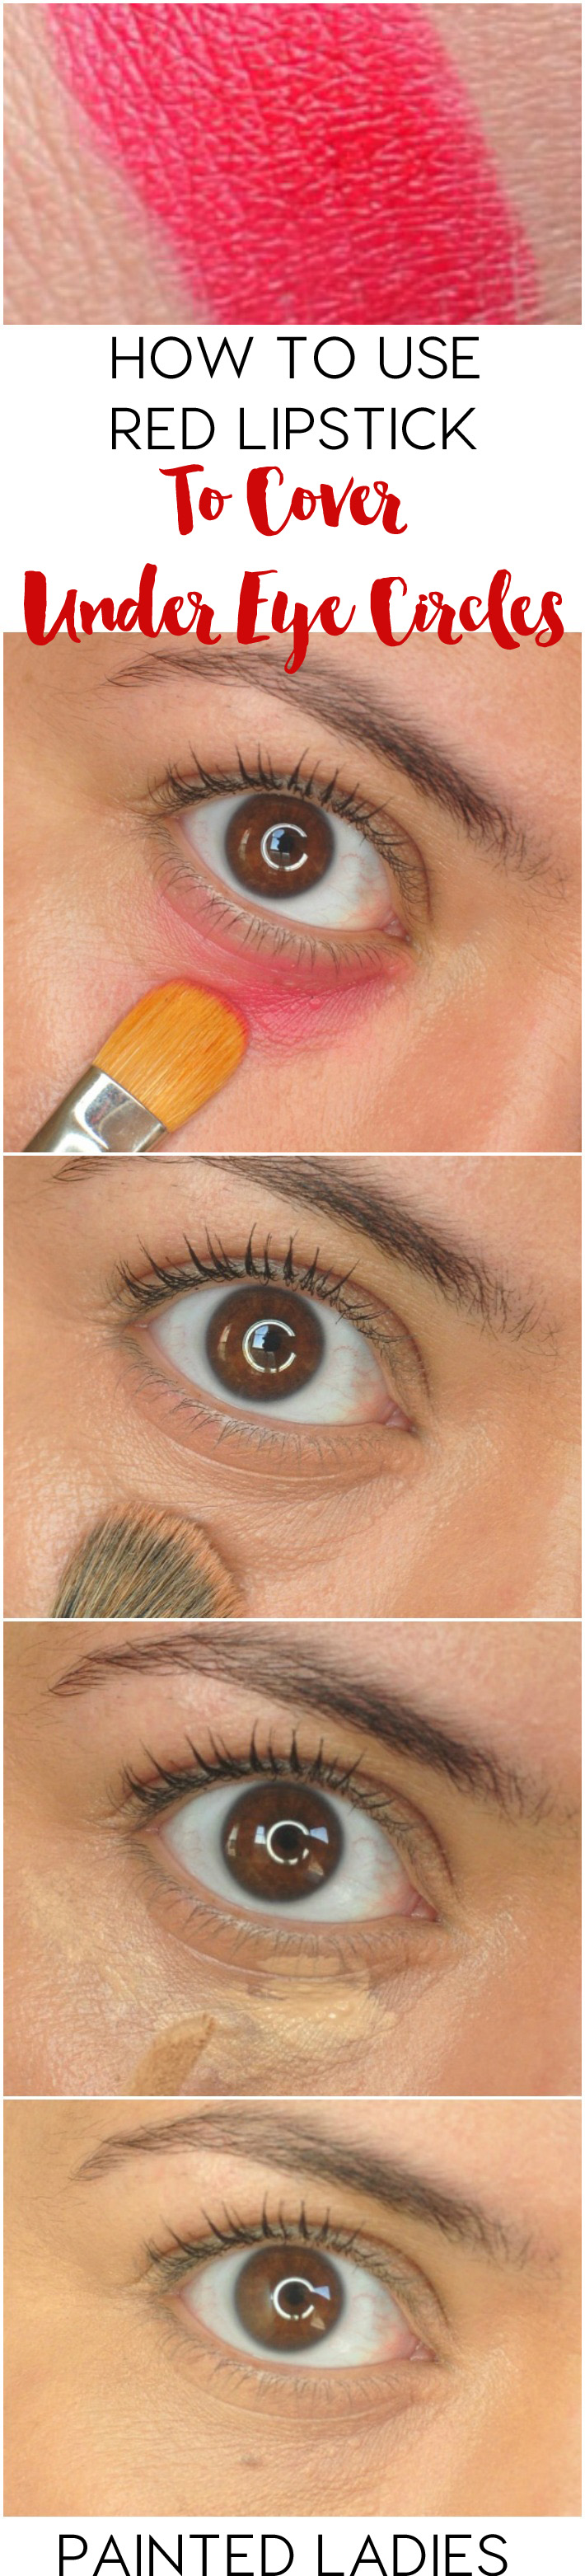 How To Use Red Lipstick To Cover Under Eye Circles Painted Ladies Undereye Circles Eye Circles Makeup Tips